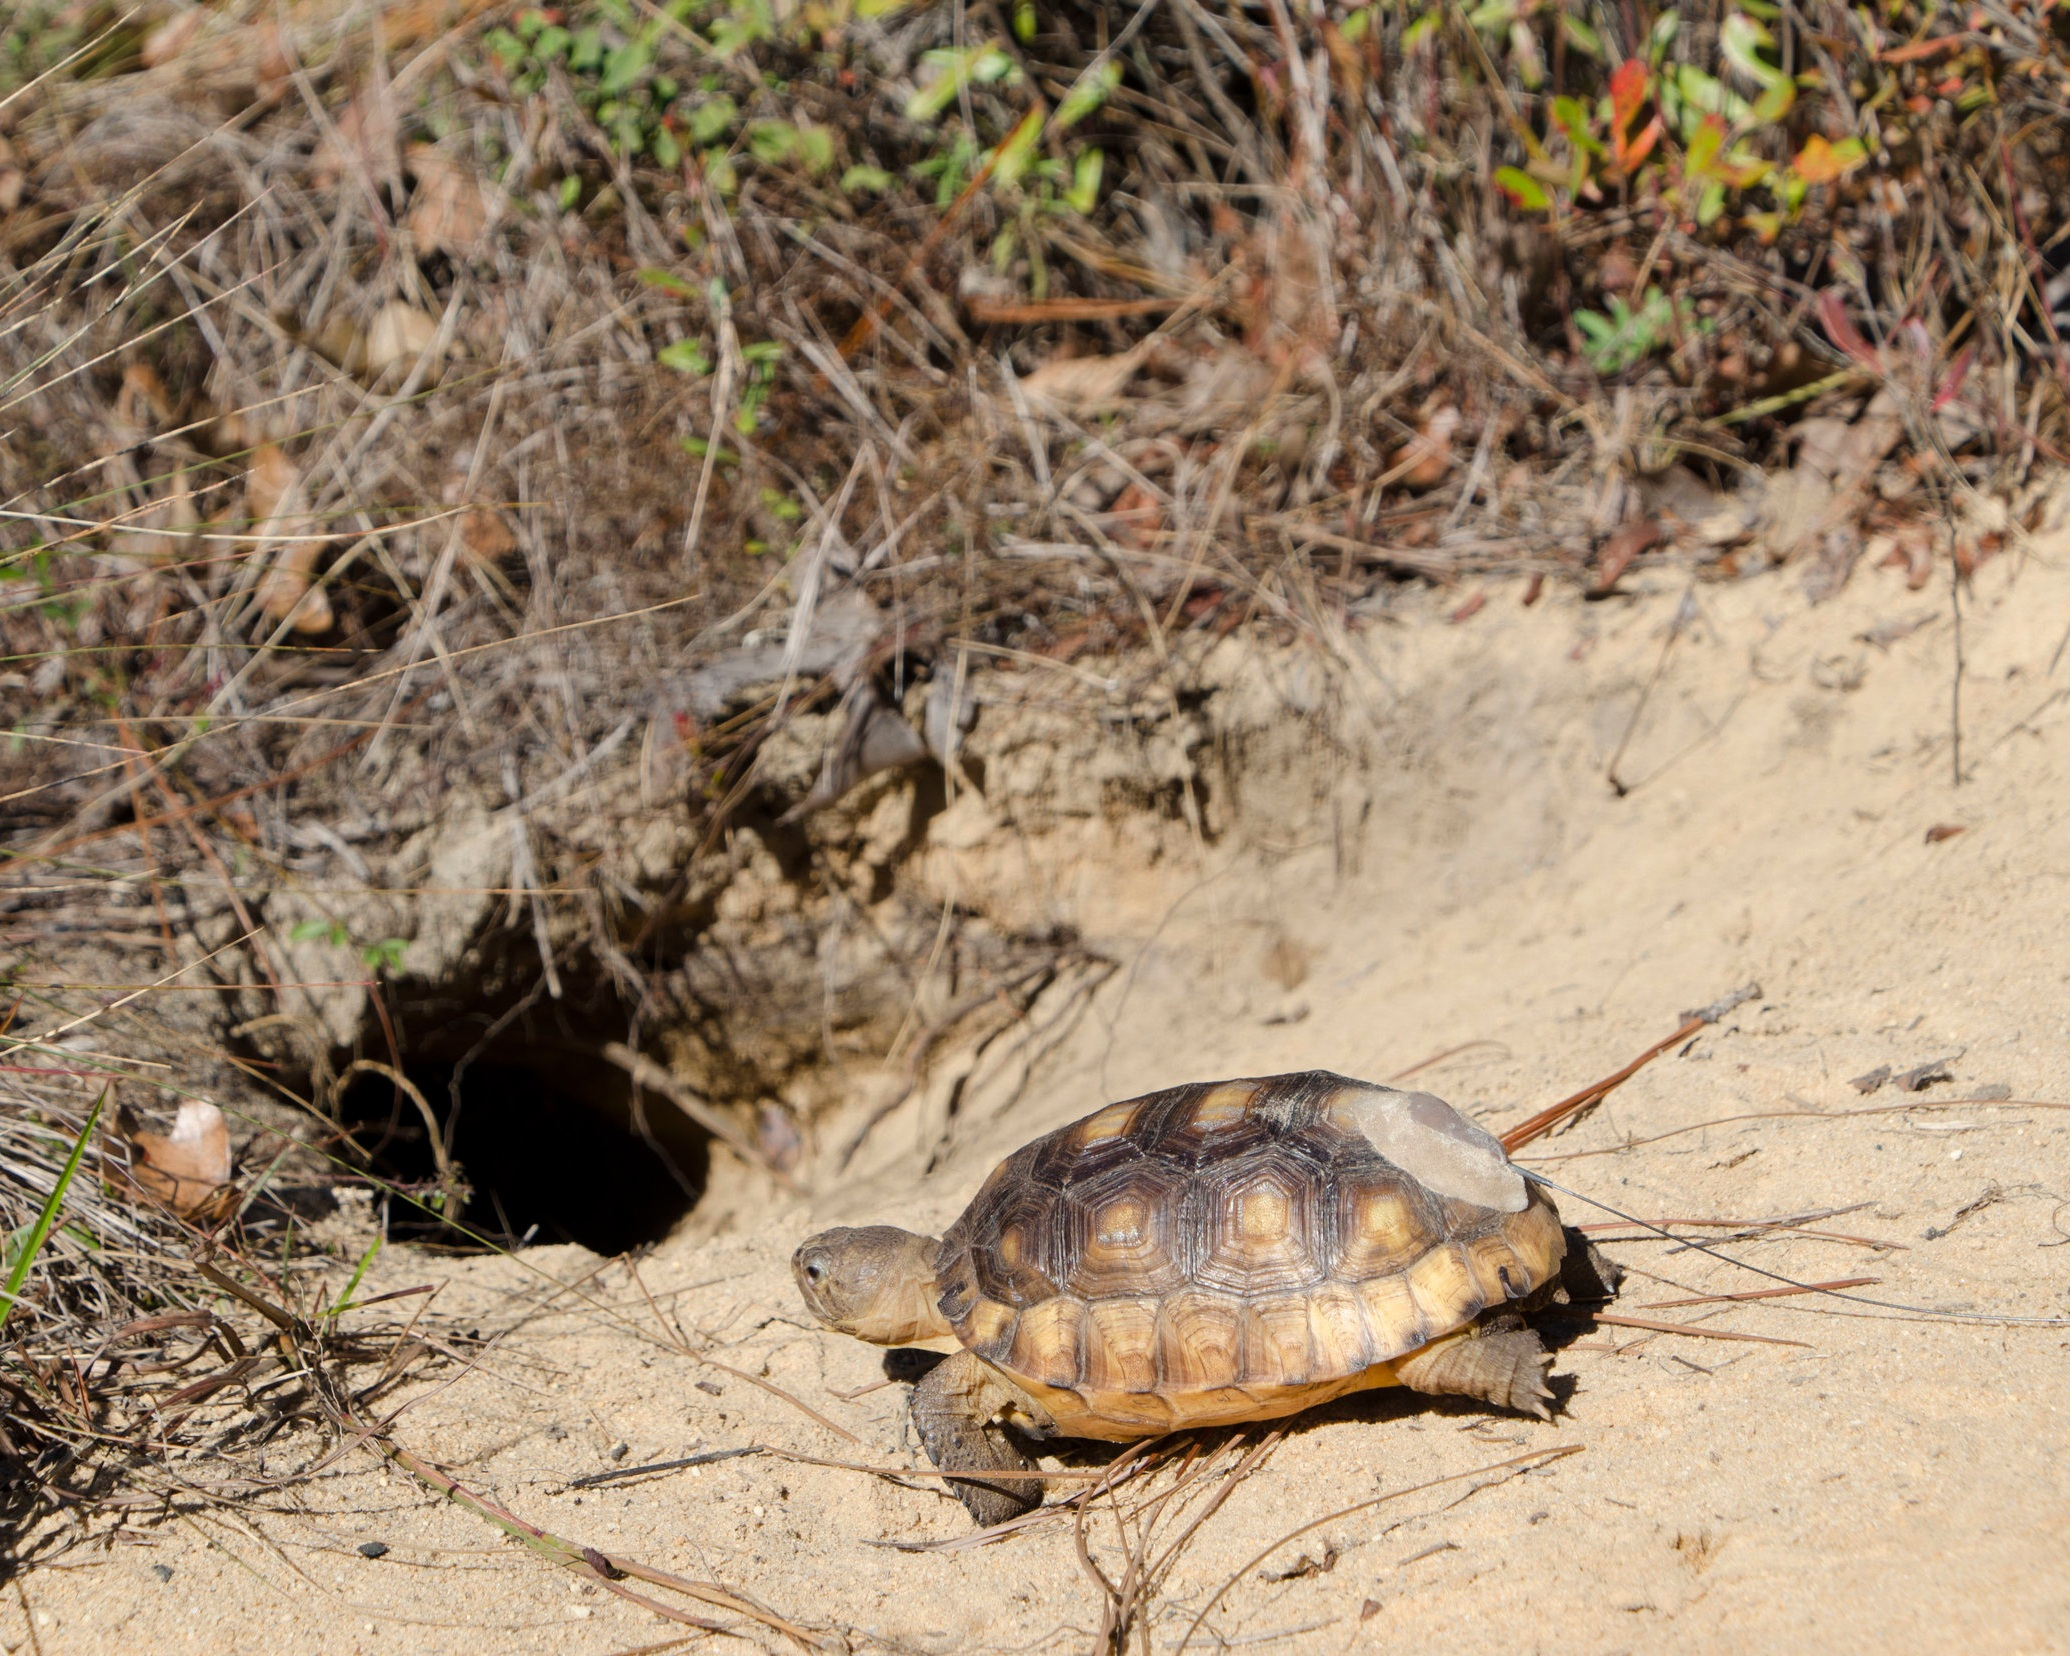 Radio transmitters on some of the released tortoises will enable researchers to collect detailed data about their movements, information that is rewriting the playbook for how tortoise reintroduction projects are done.